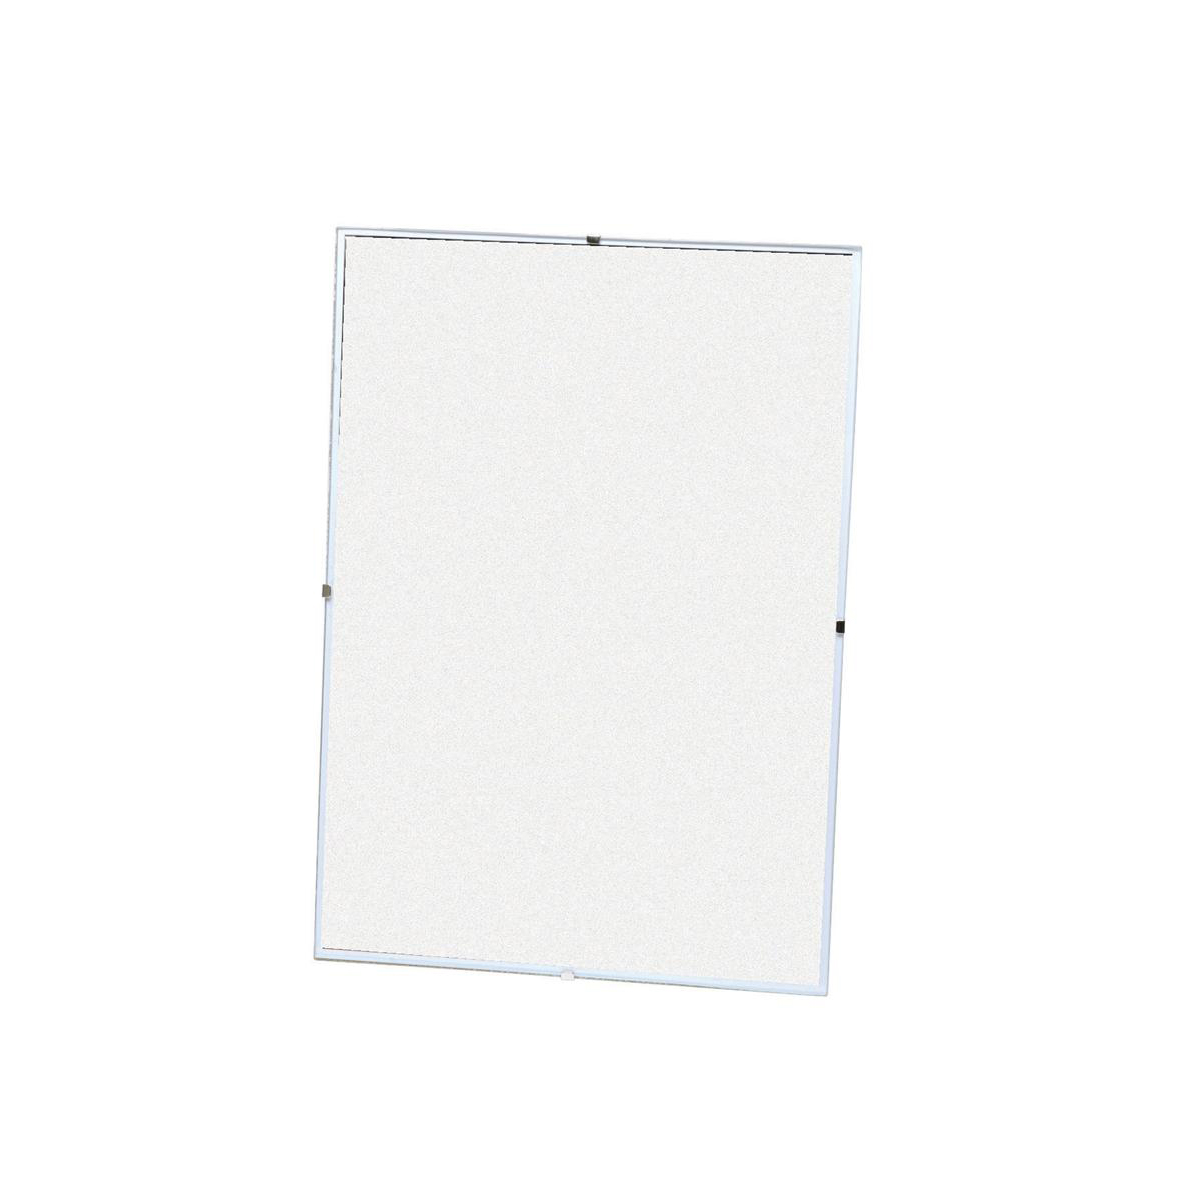 Picture frames 5 Star Office Clip Frame Plastic Front for Wall-mounting Back-loading A1 840x594mm Clear